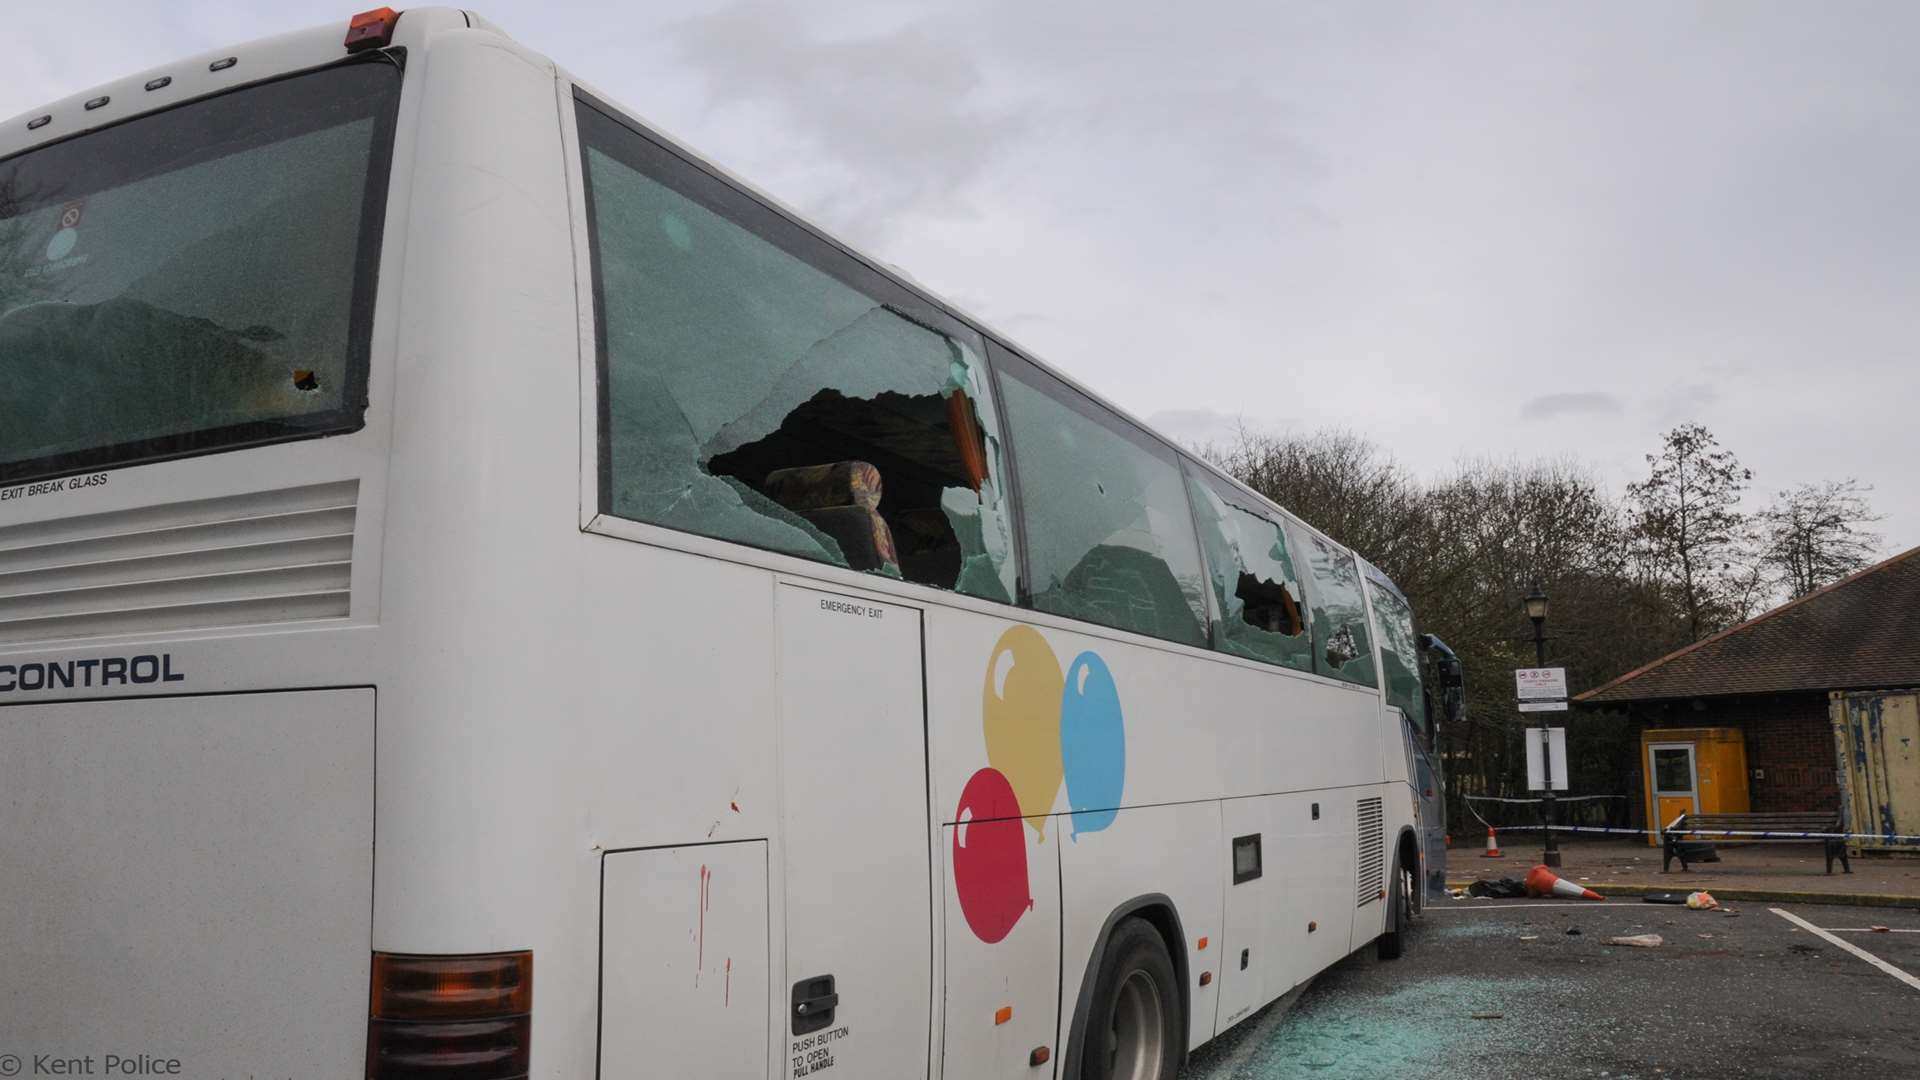 The coach damaged after violence took hold at Maidstone Services off the M20